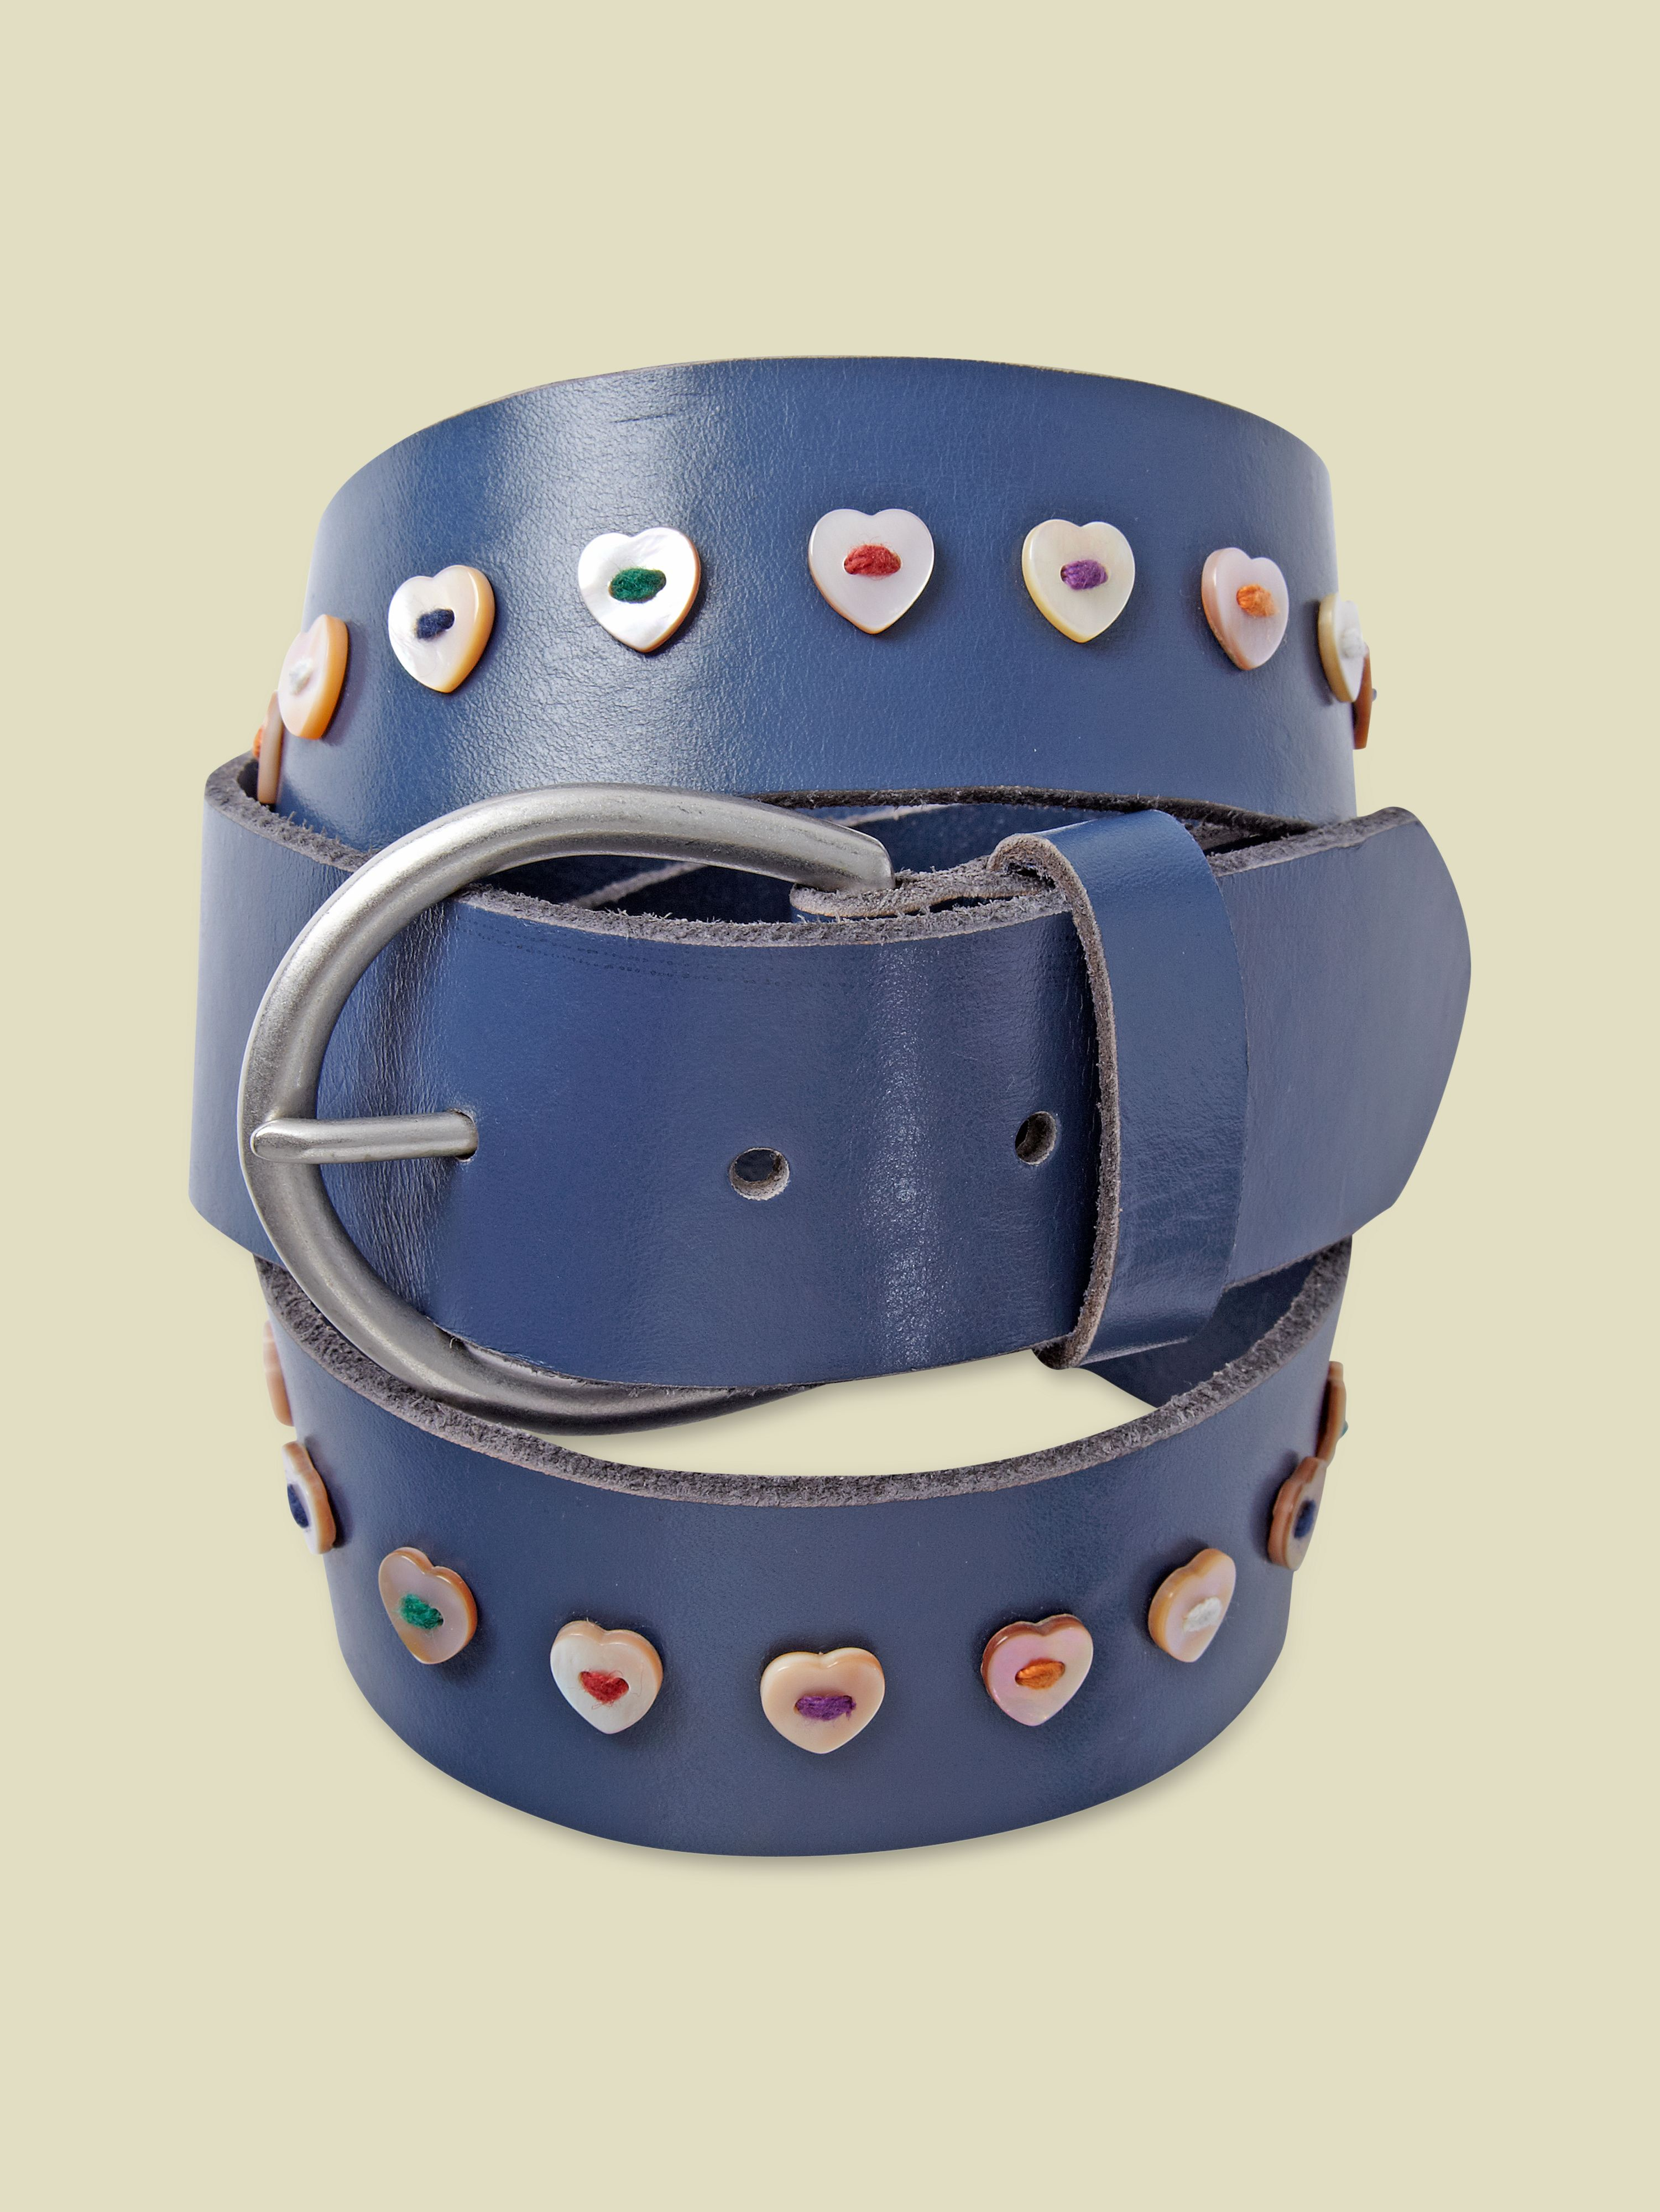 Heart button belt